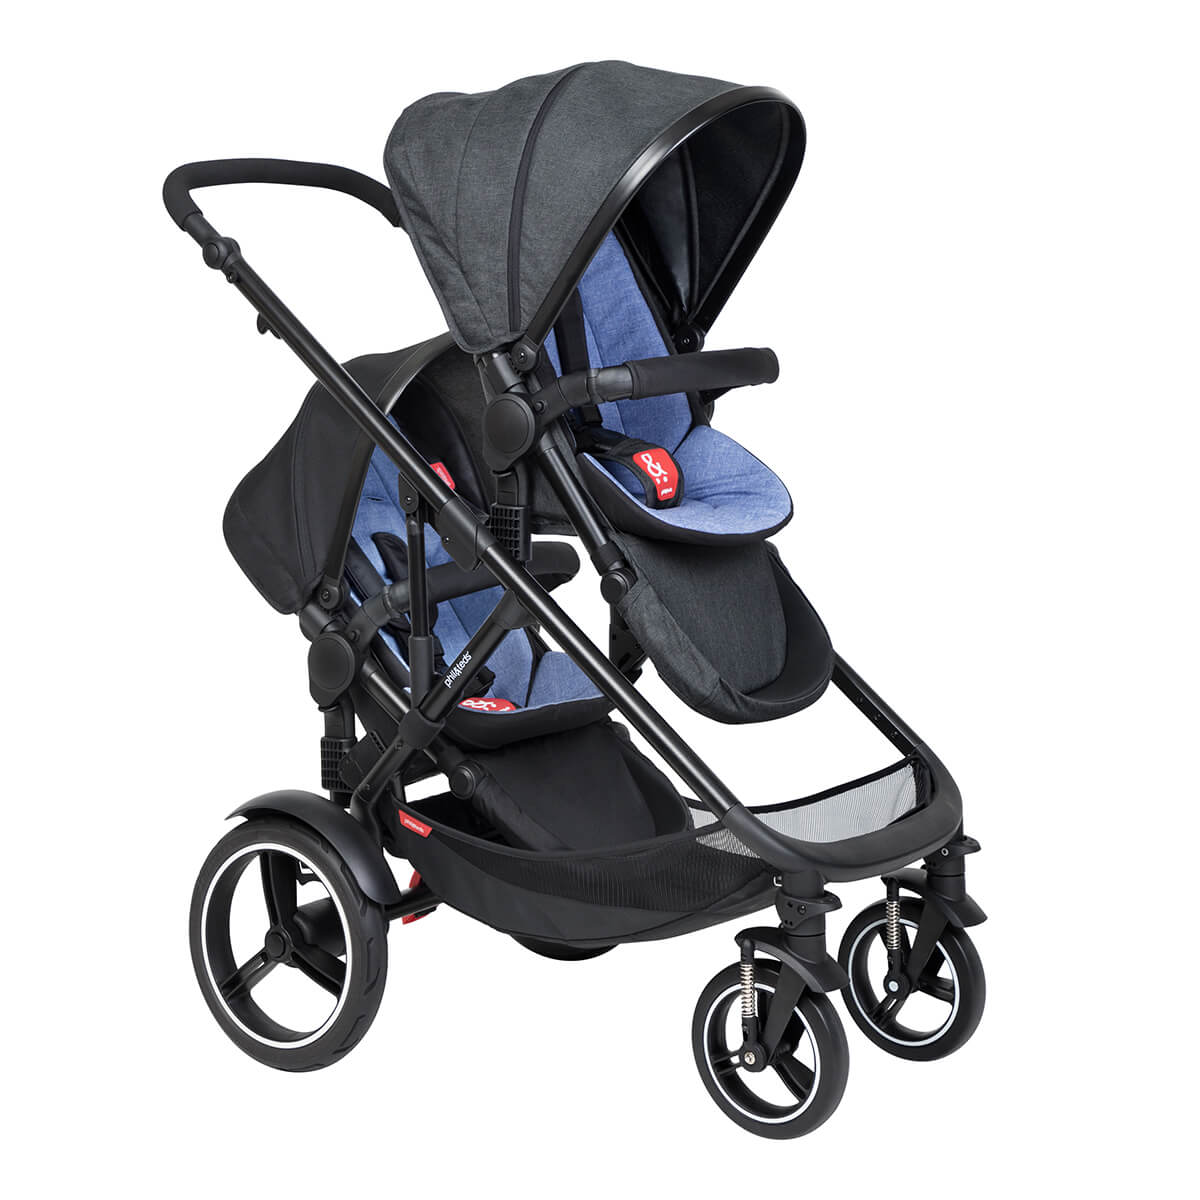 https://cdn.accentuate.io/4417246363682/19437753860274/philteds-voyager-inline-buggy-with-double-kit-in-rear-in-sky-blue-colour-v1626482969329.jpg?1200x1200